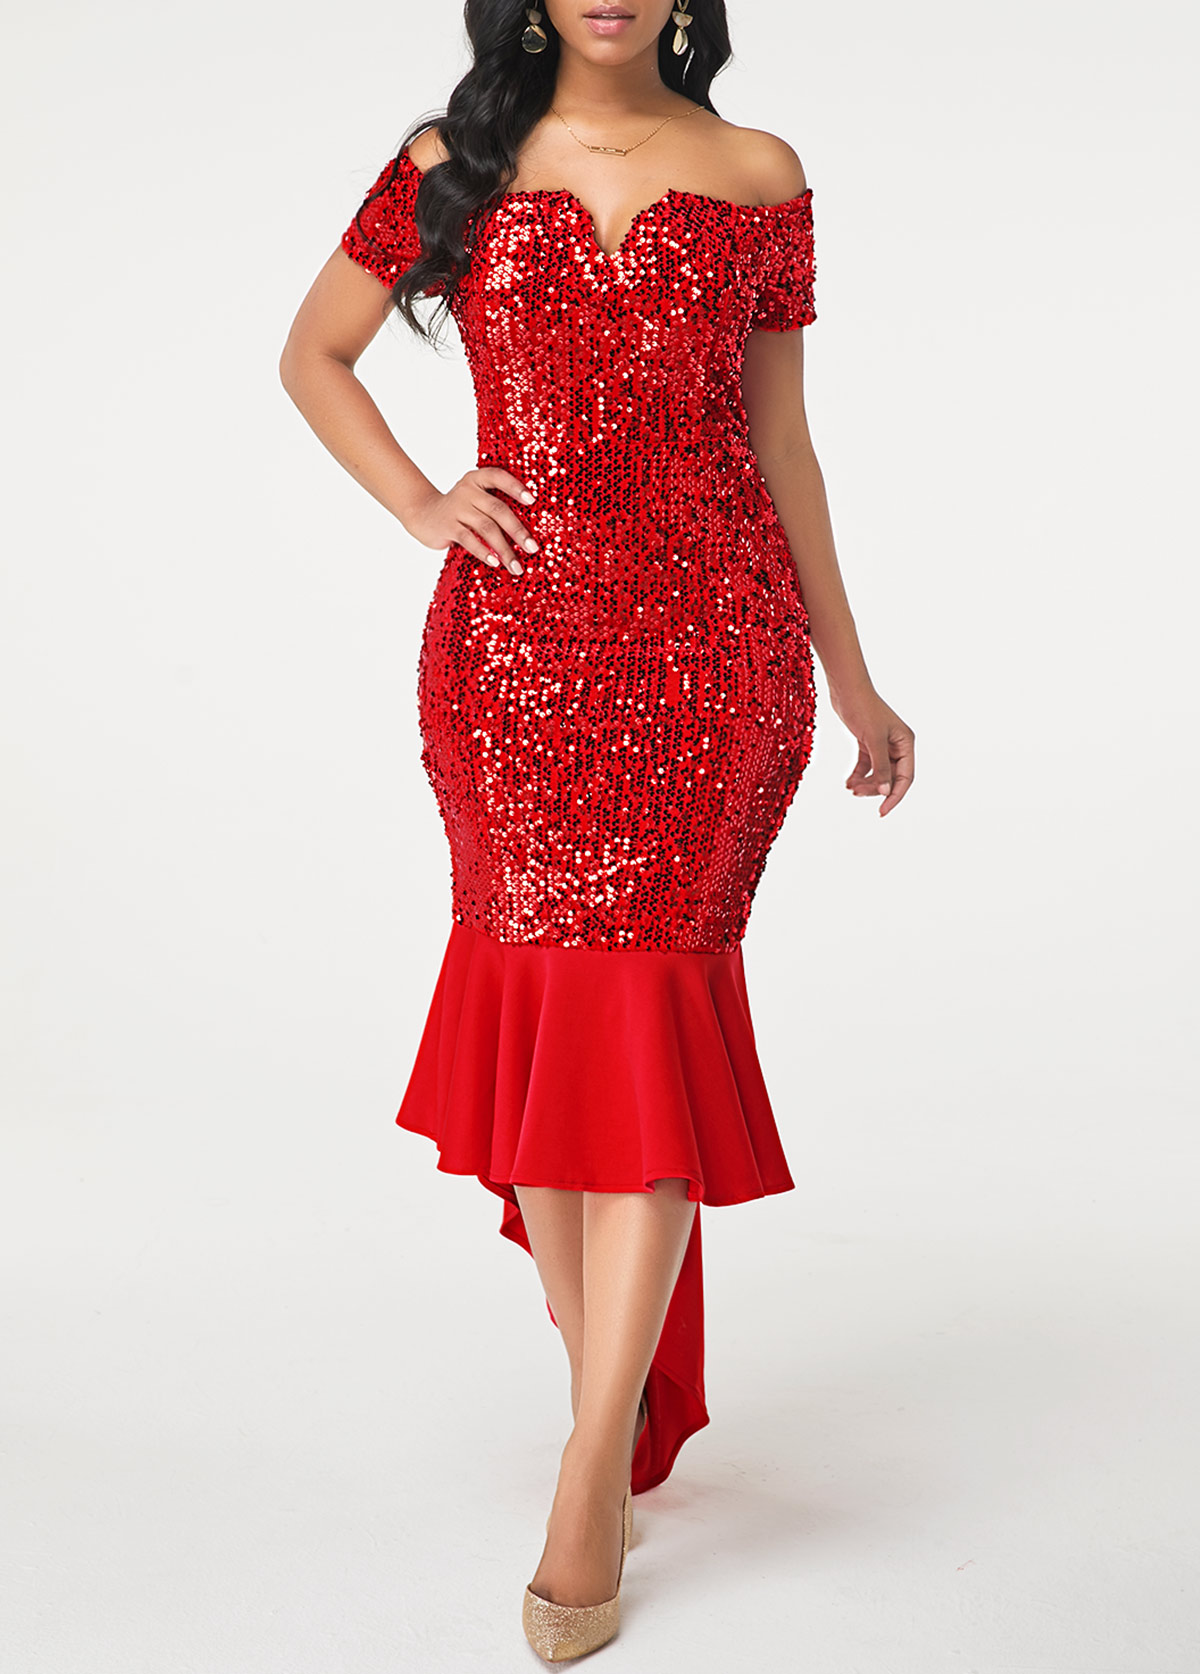 Off the Shoulder Sequin Embellished Wine Red Sheath Dress